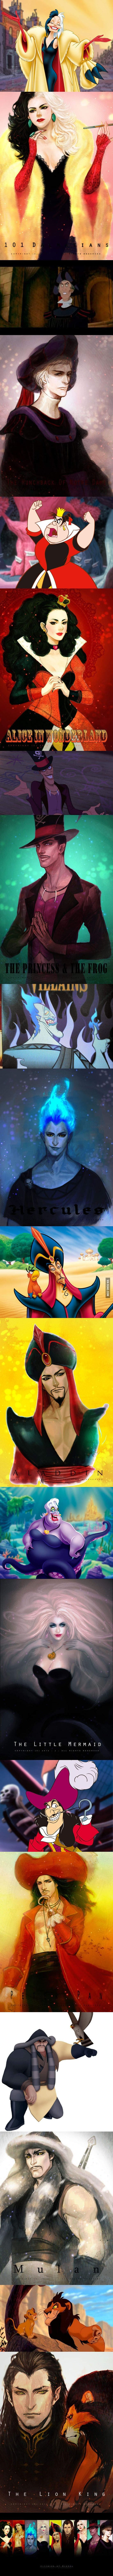 If Disney Villains Were Beautiful.